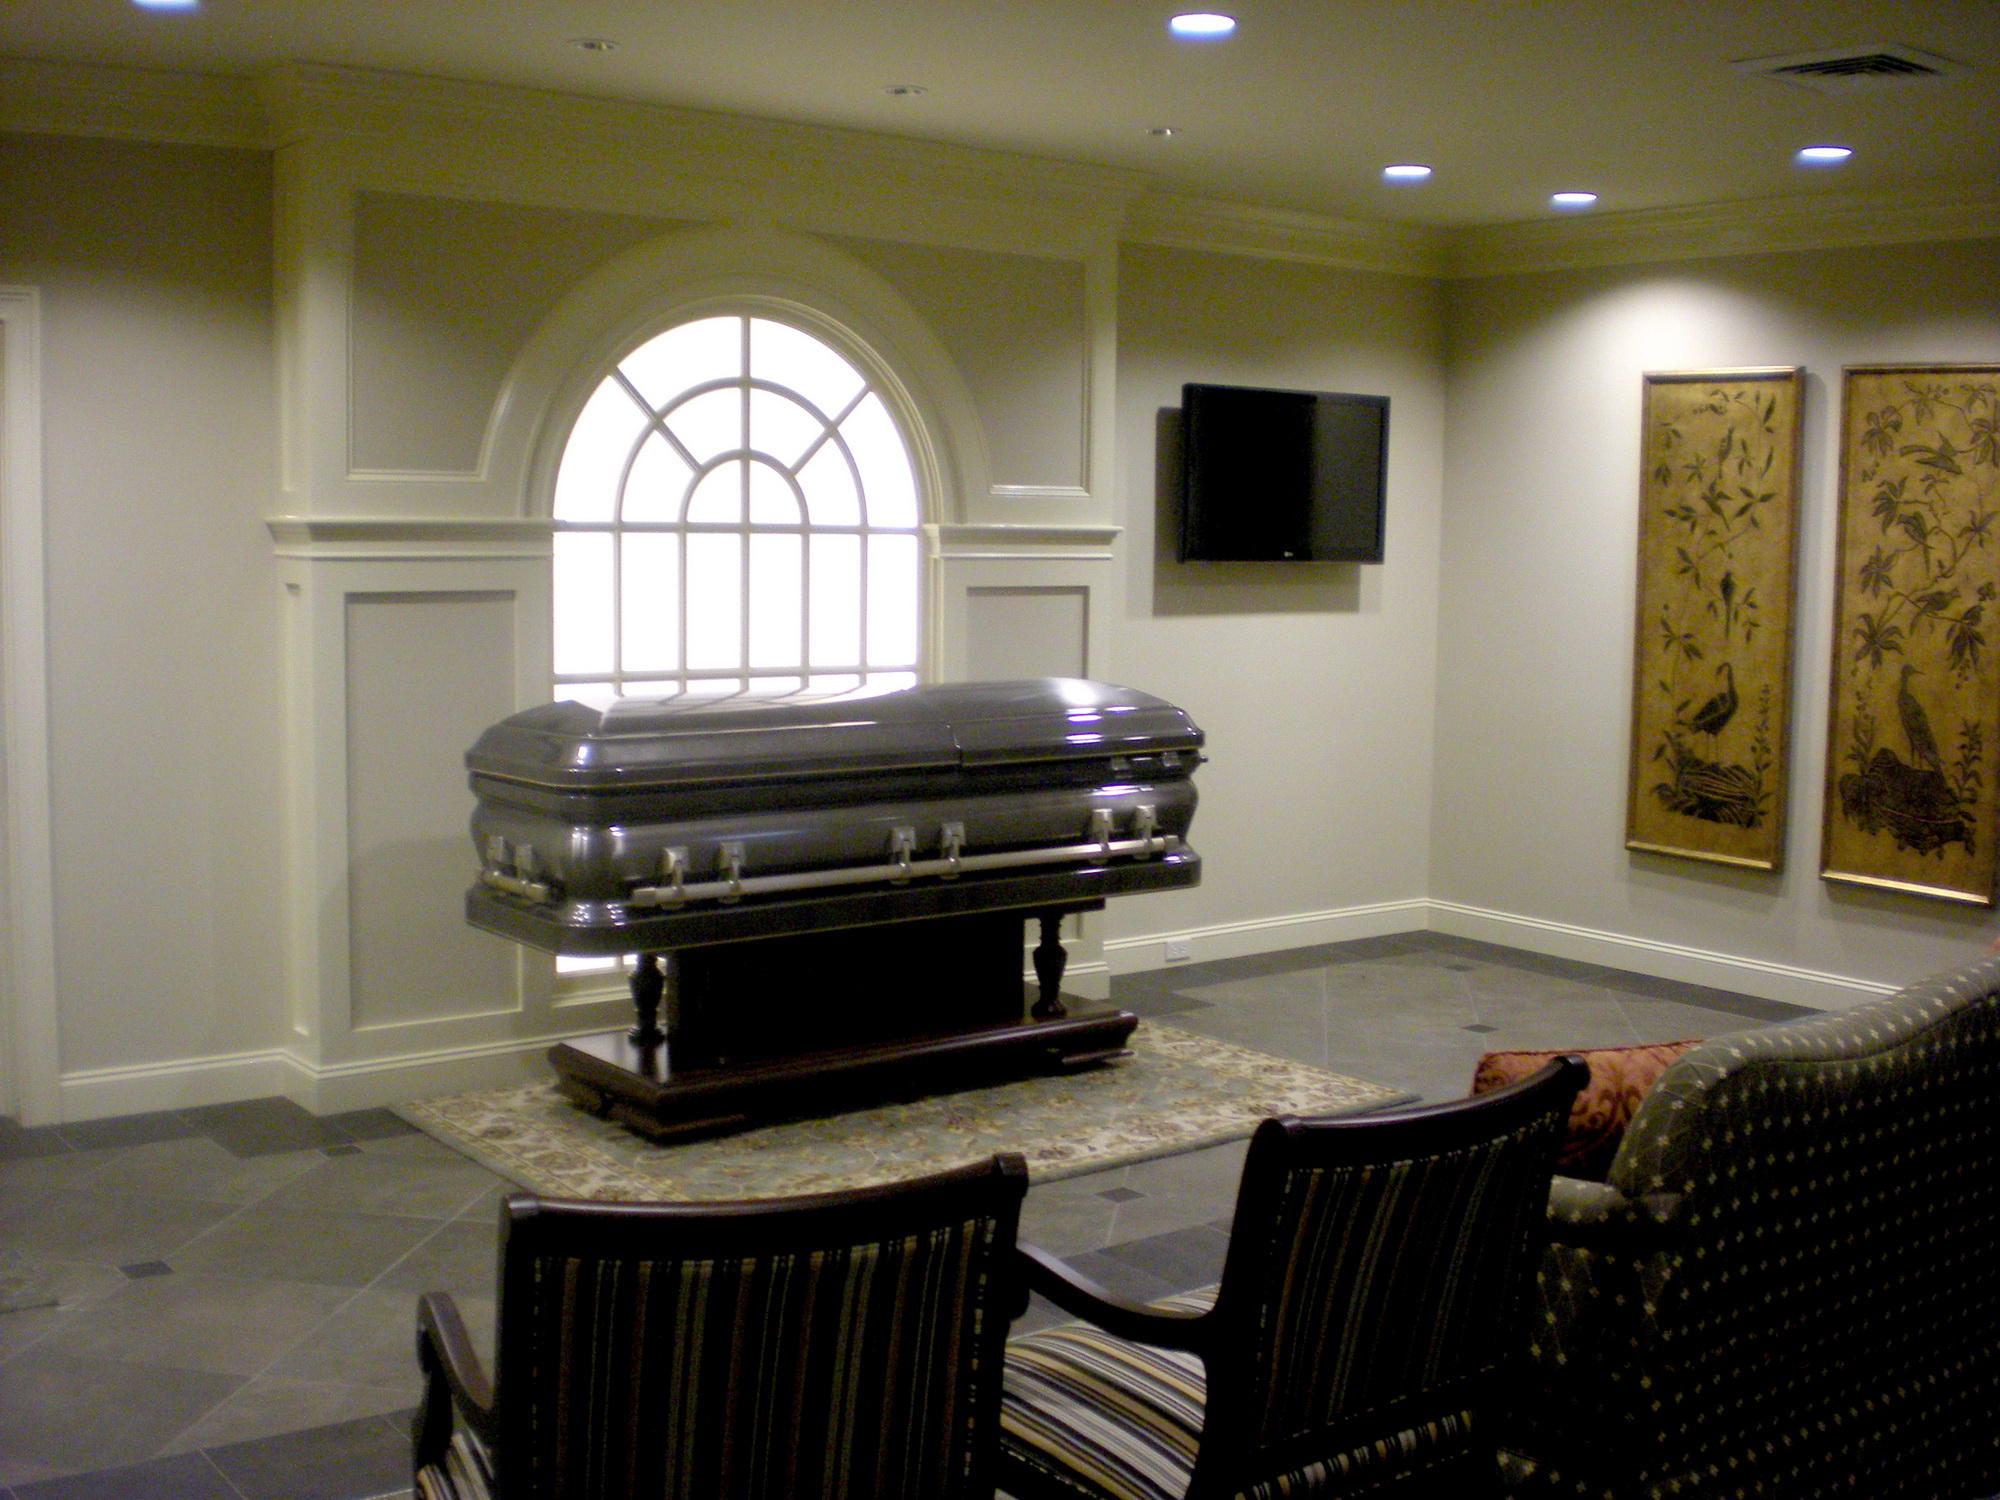 Wilmington burial and cremation services jst architects for Home interior images